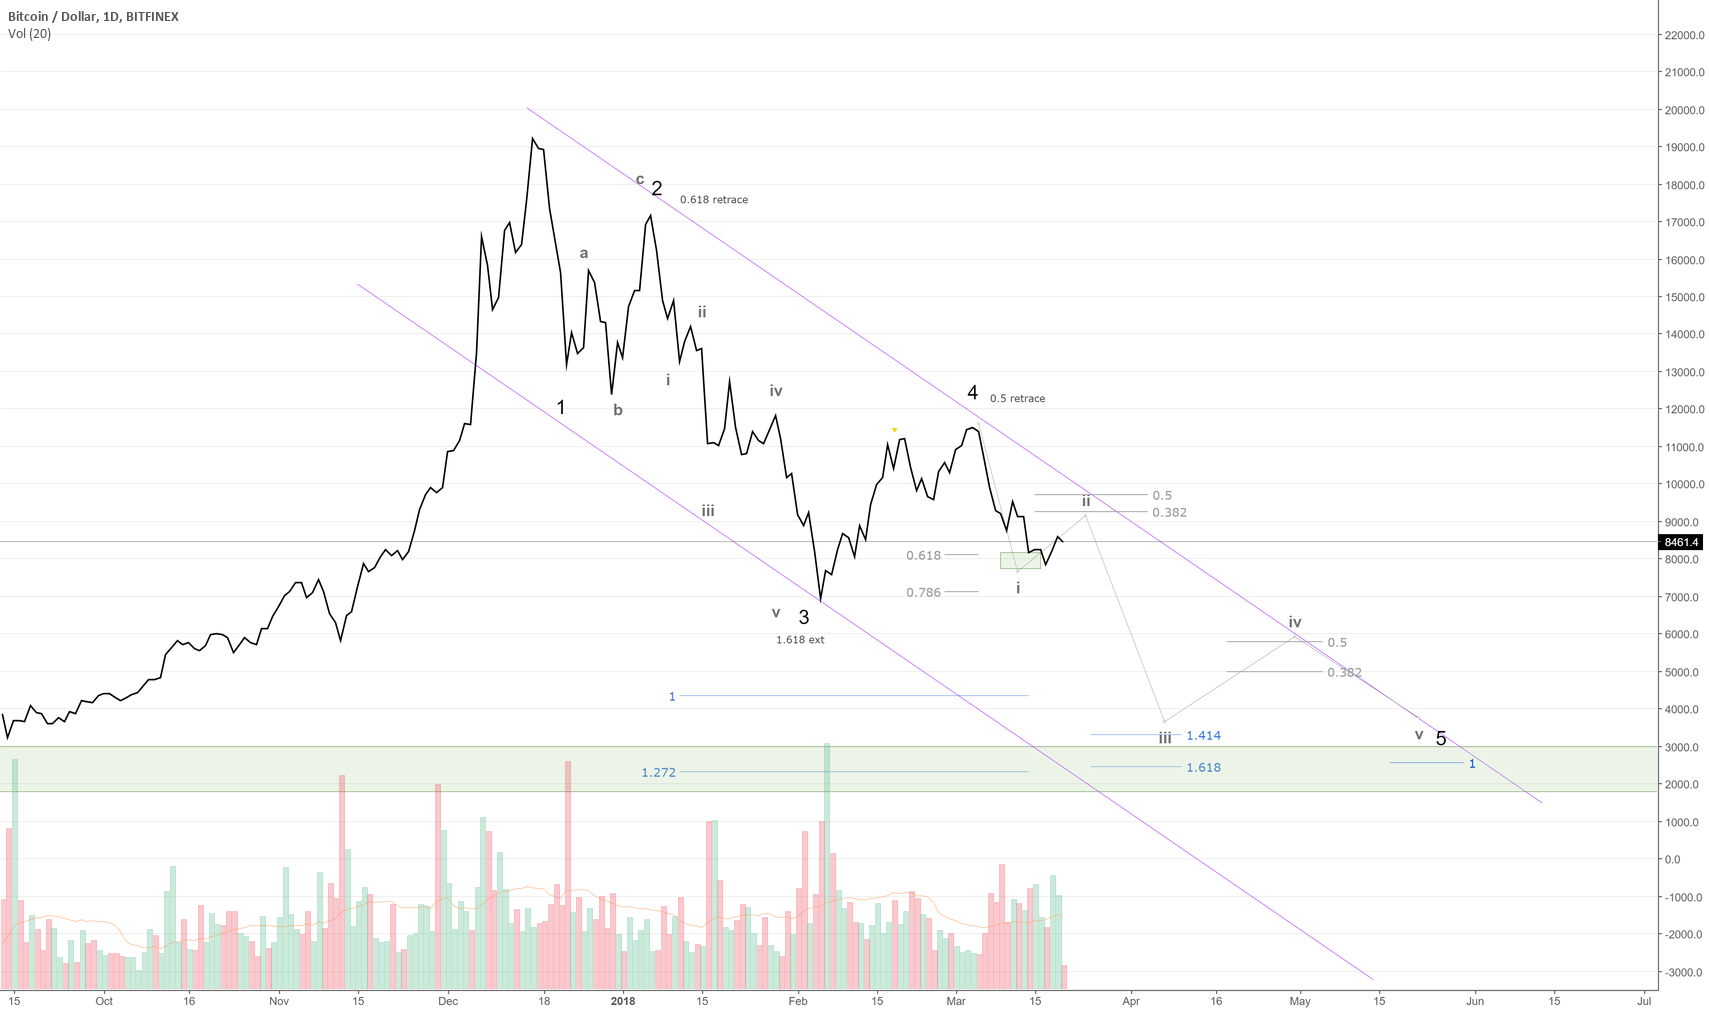 Part 2: The Elliot Wave road to $3k or $20k+